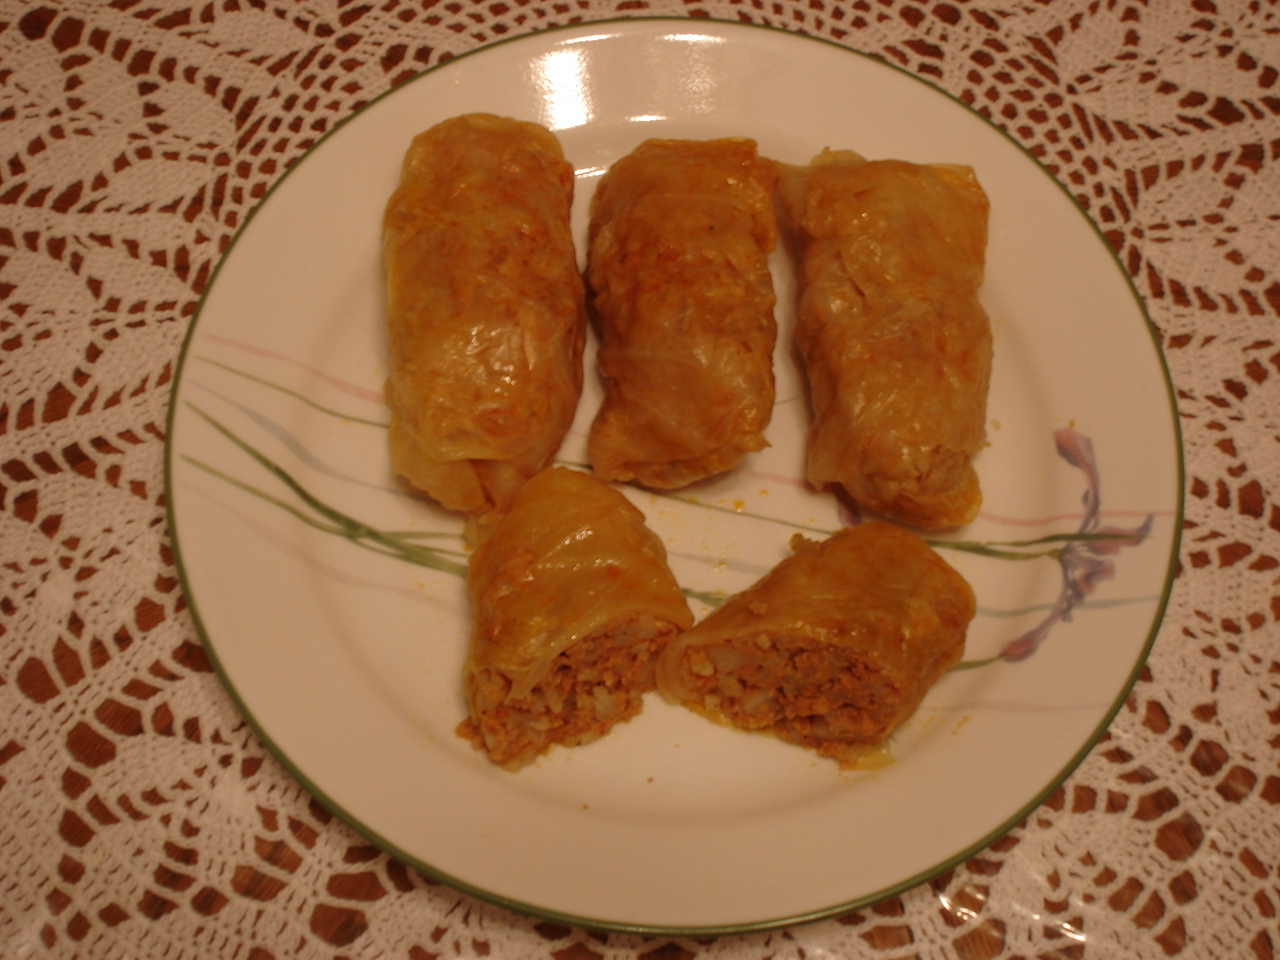 SARMA FROM DALMATIA (RECIPE FOR STUFFED CABBAGE ROLLS)